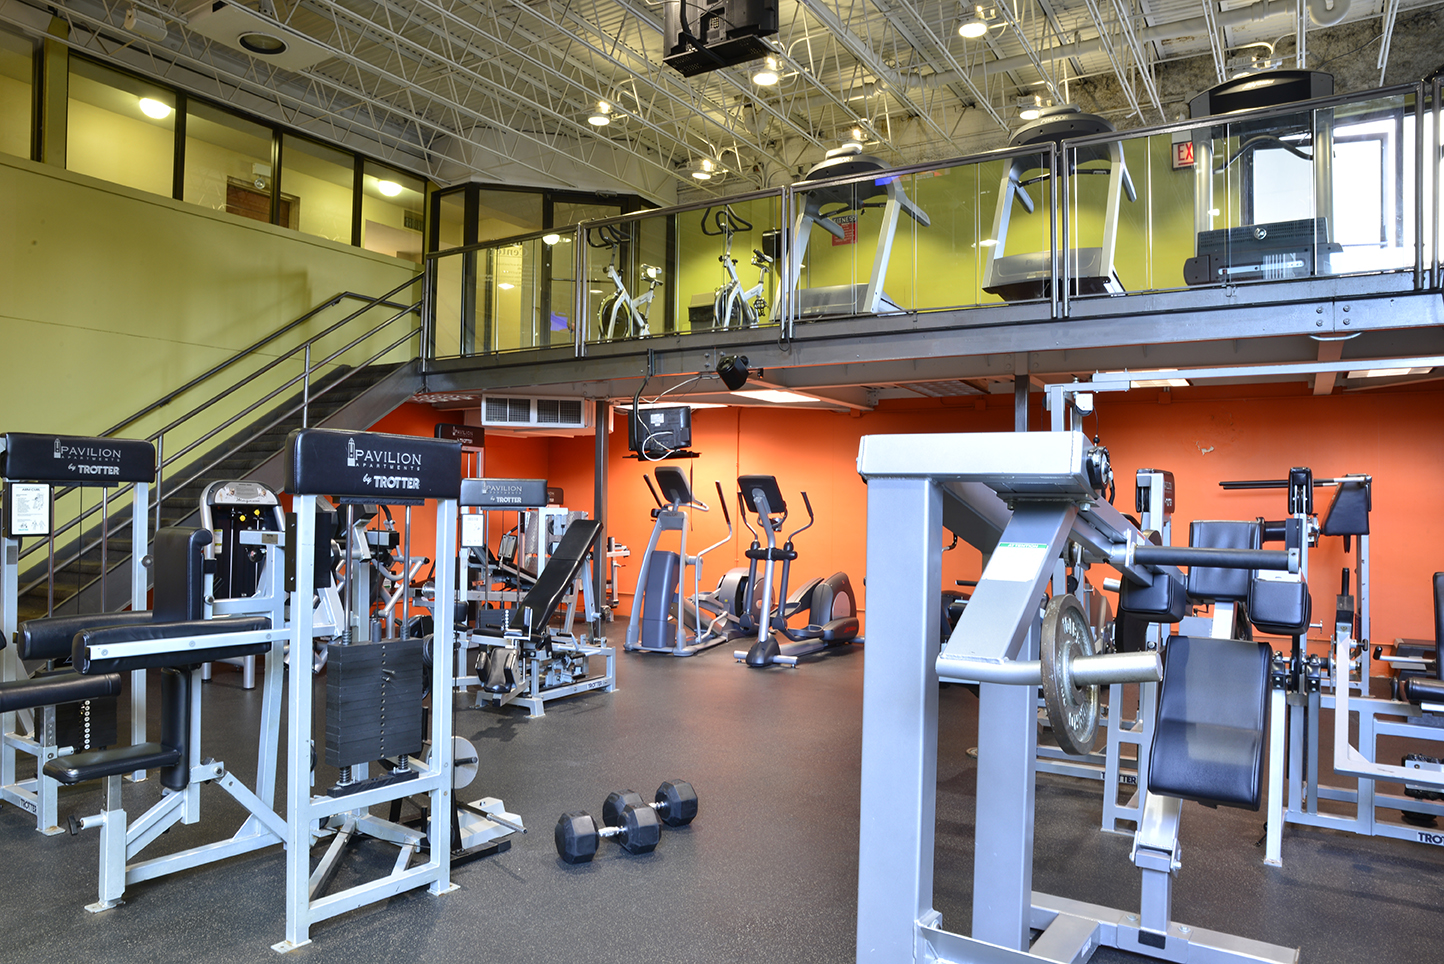 Fitness center in an apartment building